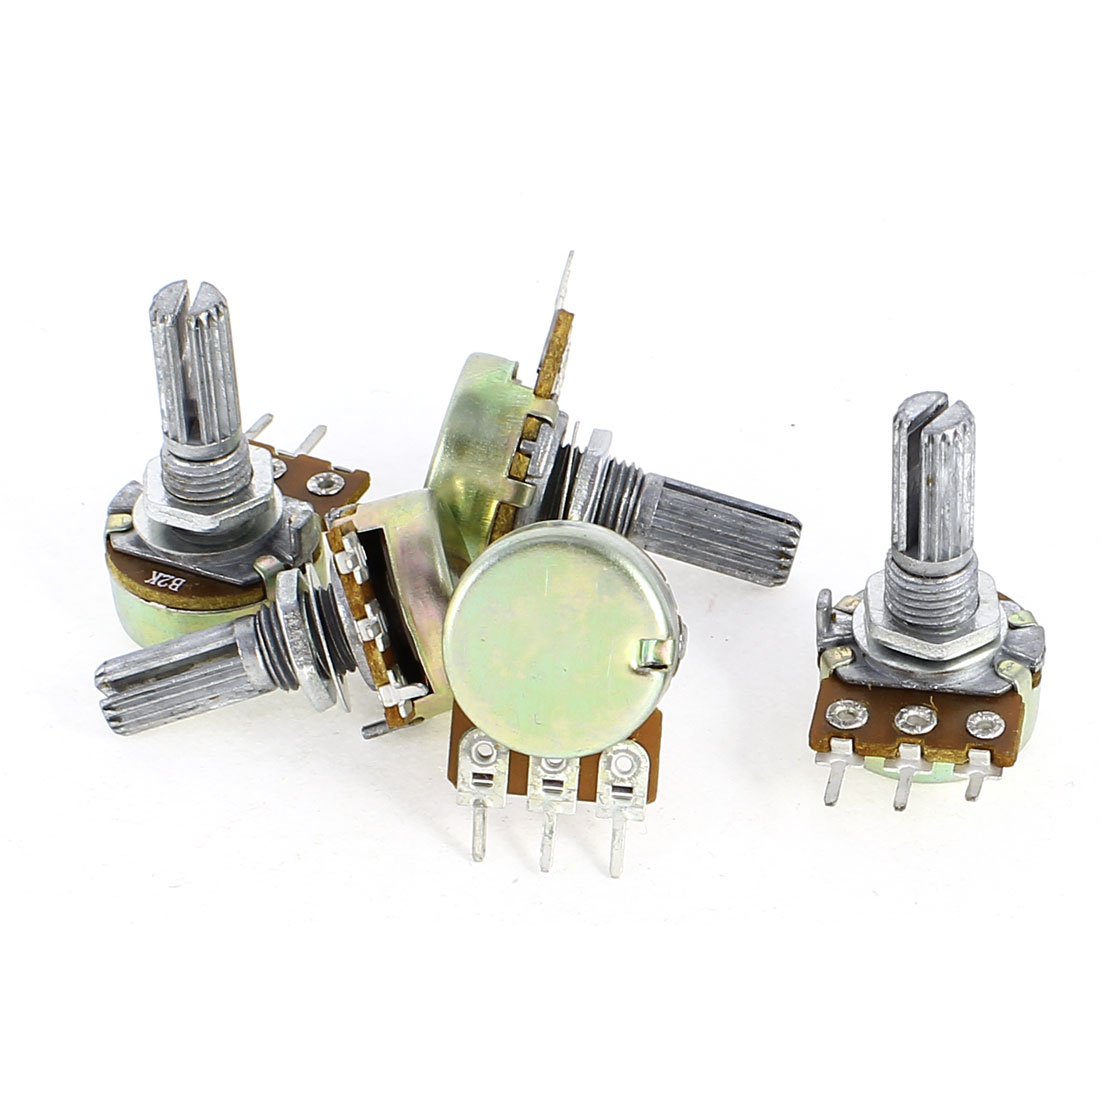 5 Pcs B2K 2K Ohm 3 Pin Terminals Single Linear Rotary Taper Potentiometers